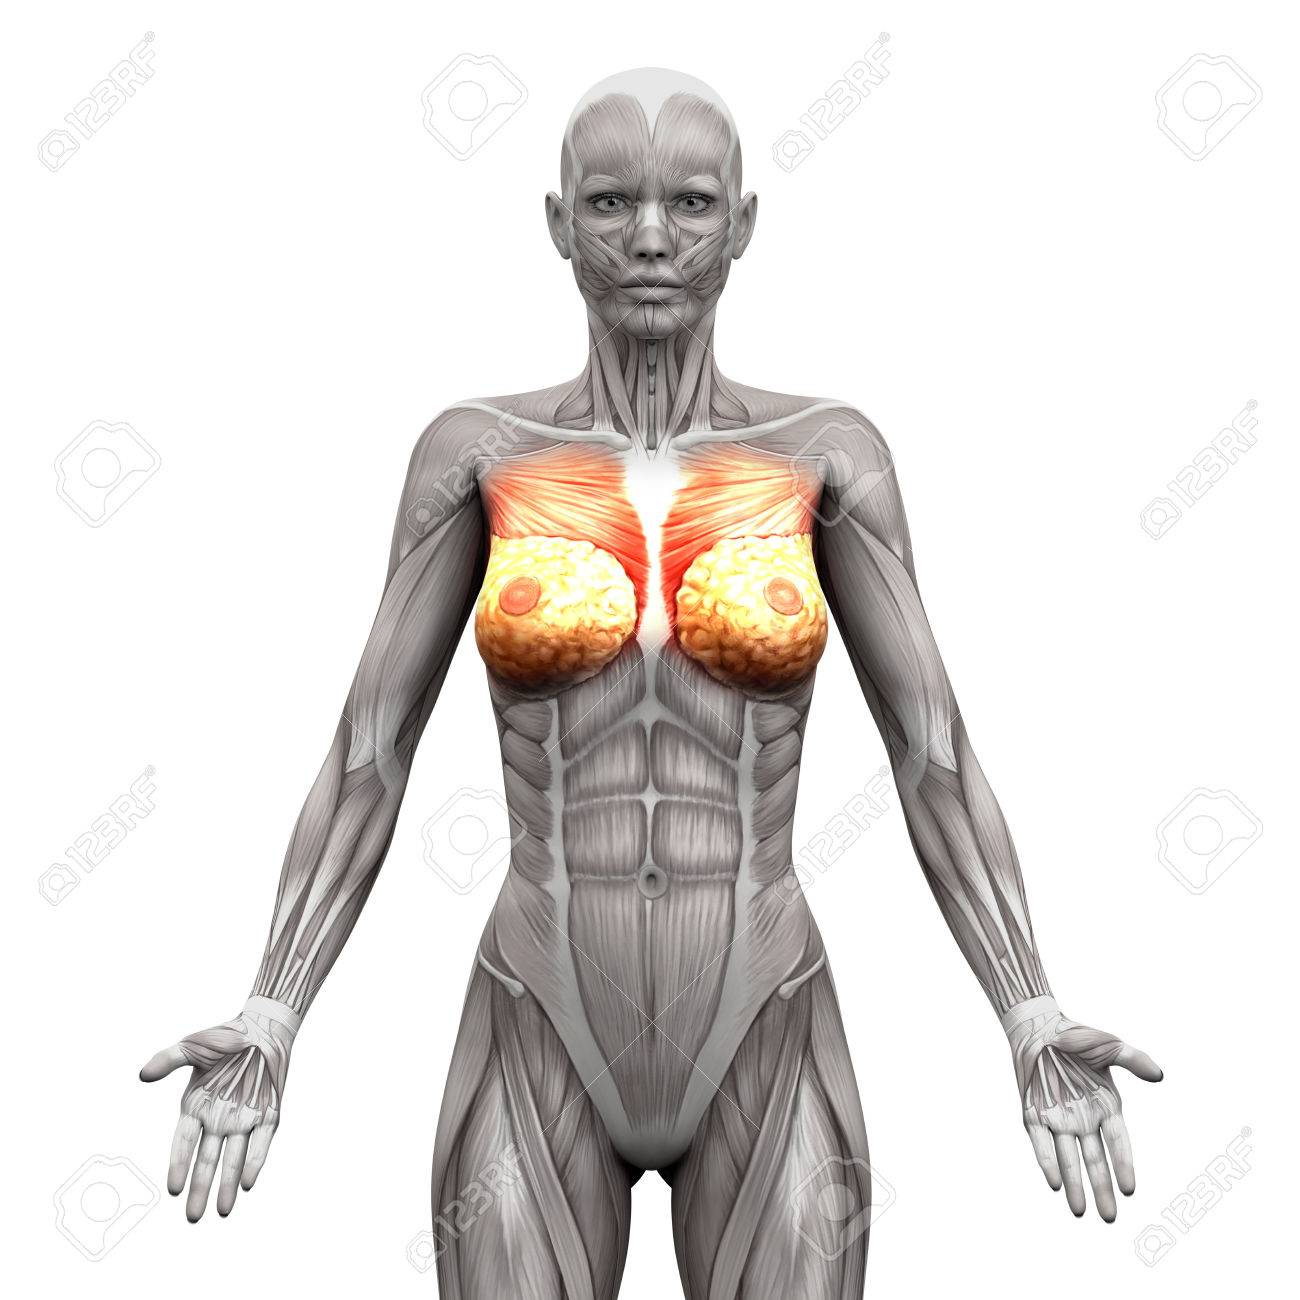 chest muscles - pectoralis major and minor - anatomy muscles, Cephalic Vein